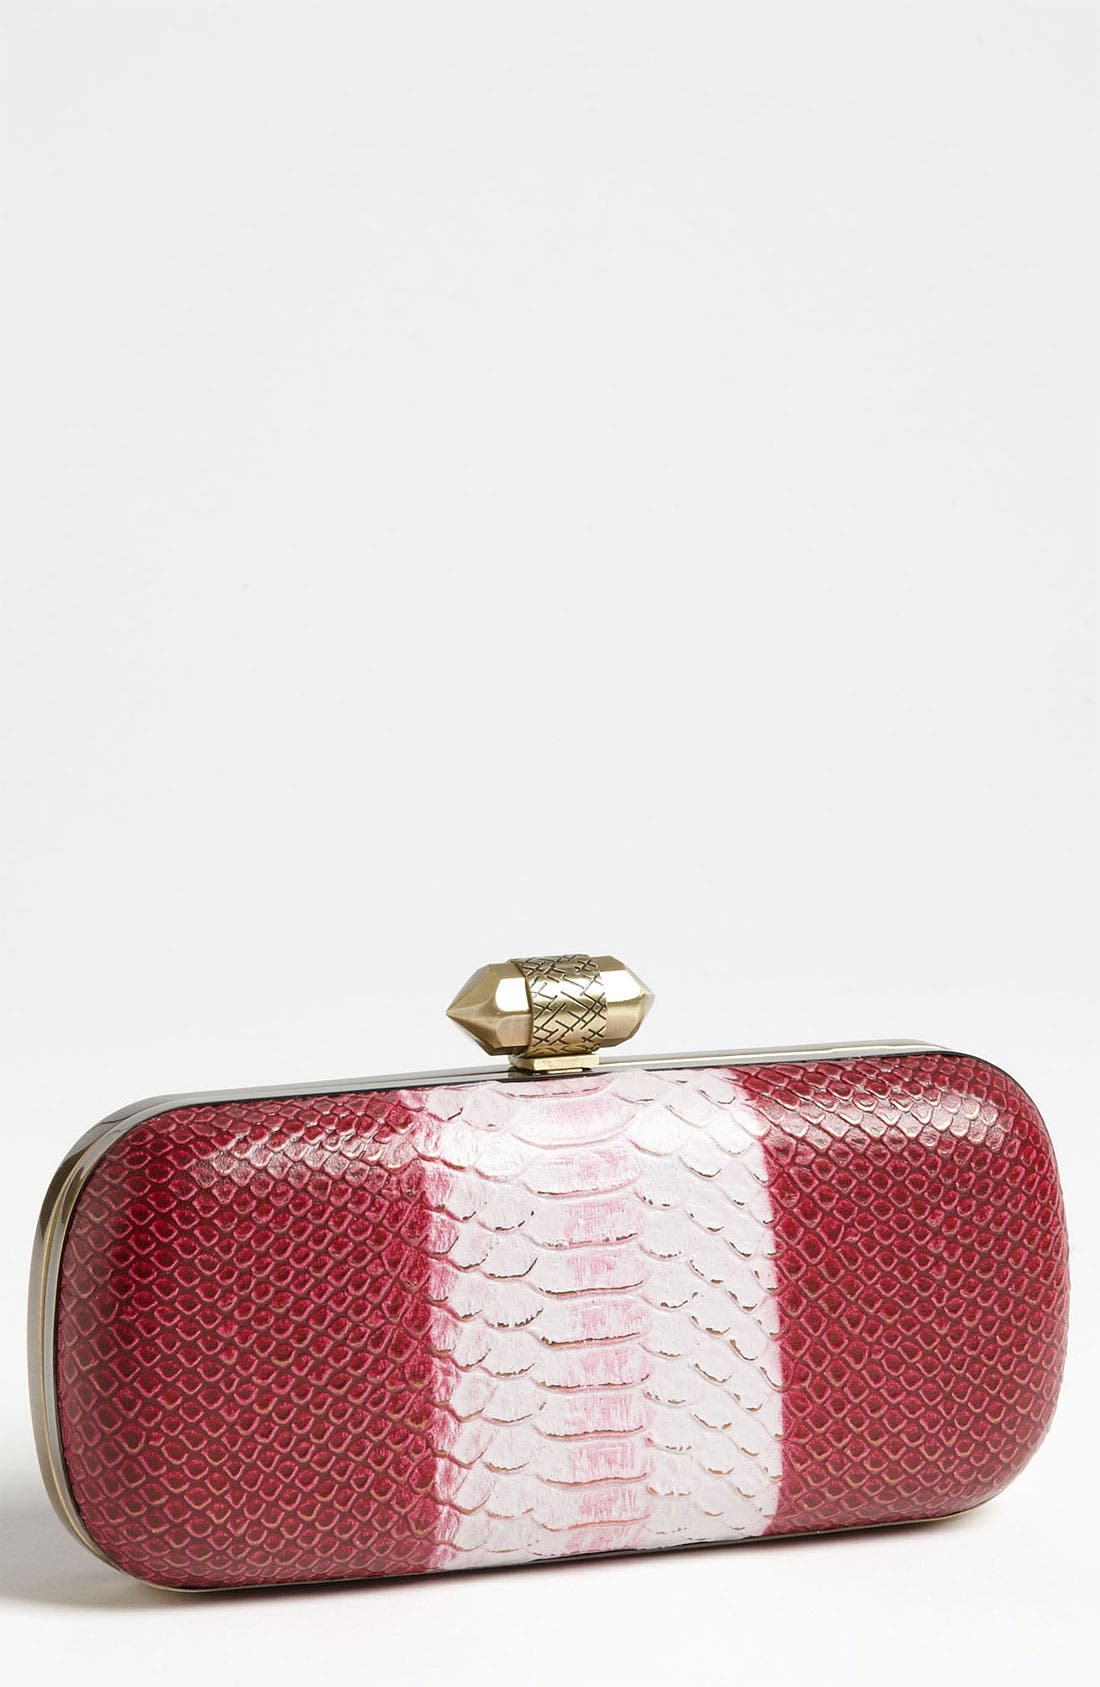 Alternate Image 1 Selected - House of Harlow 1960 'Addison' Clutch